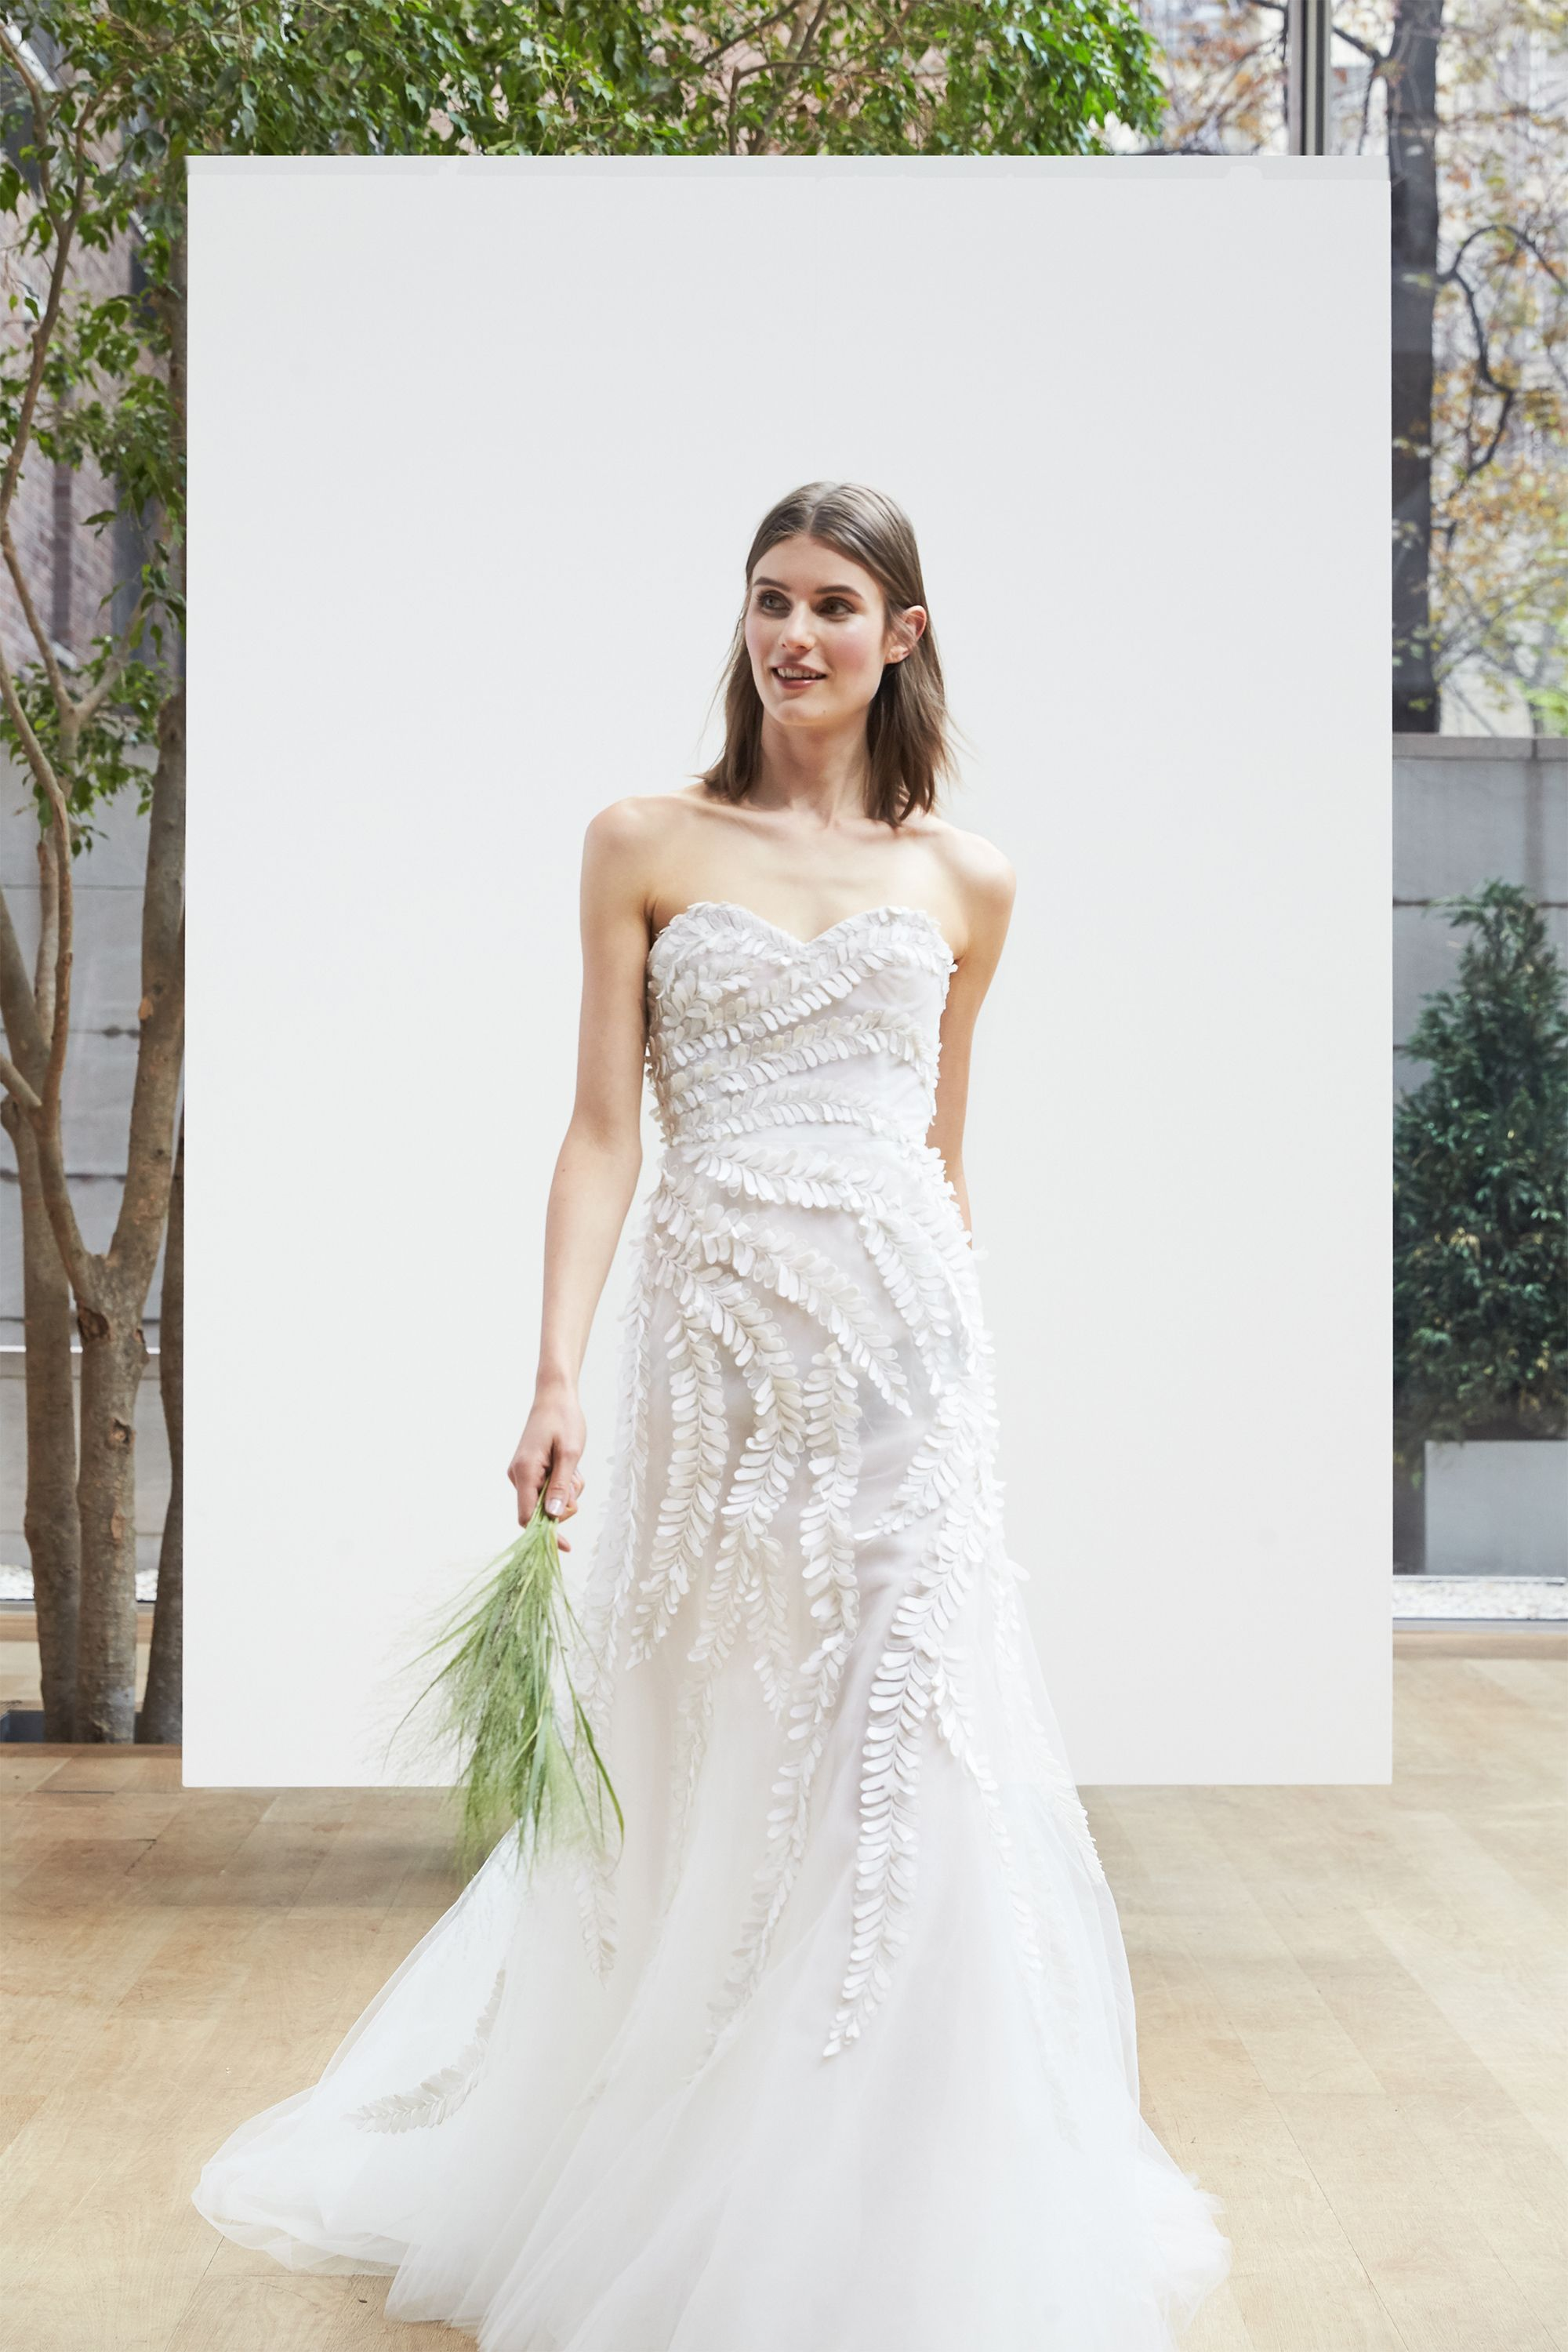 Top Boho Wedding Dress Ideas For You recommend